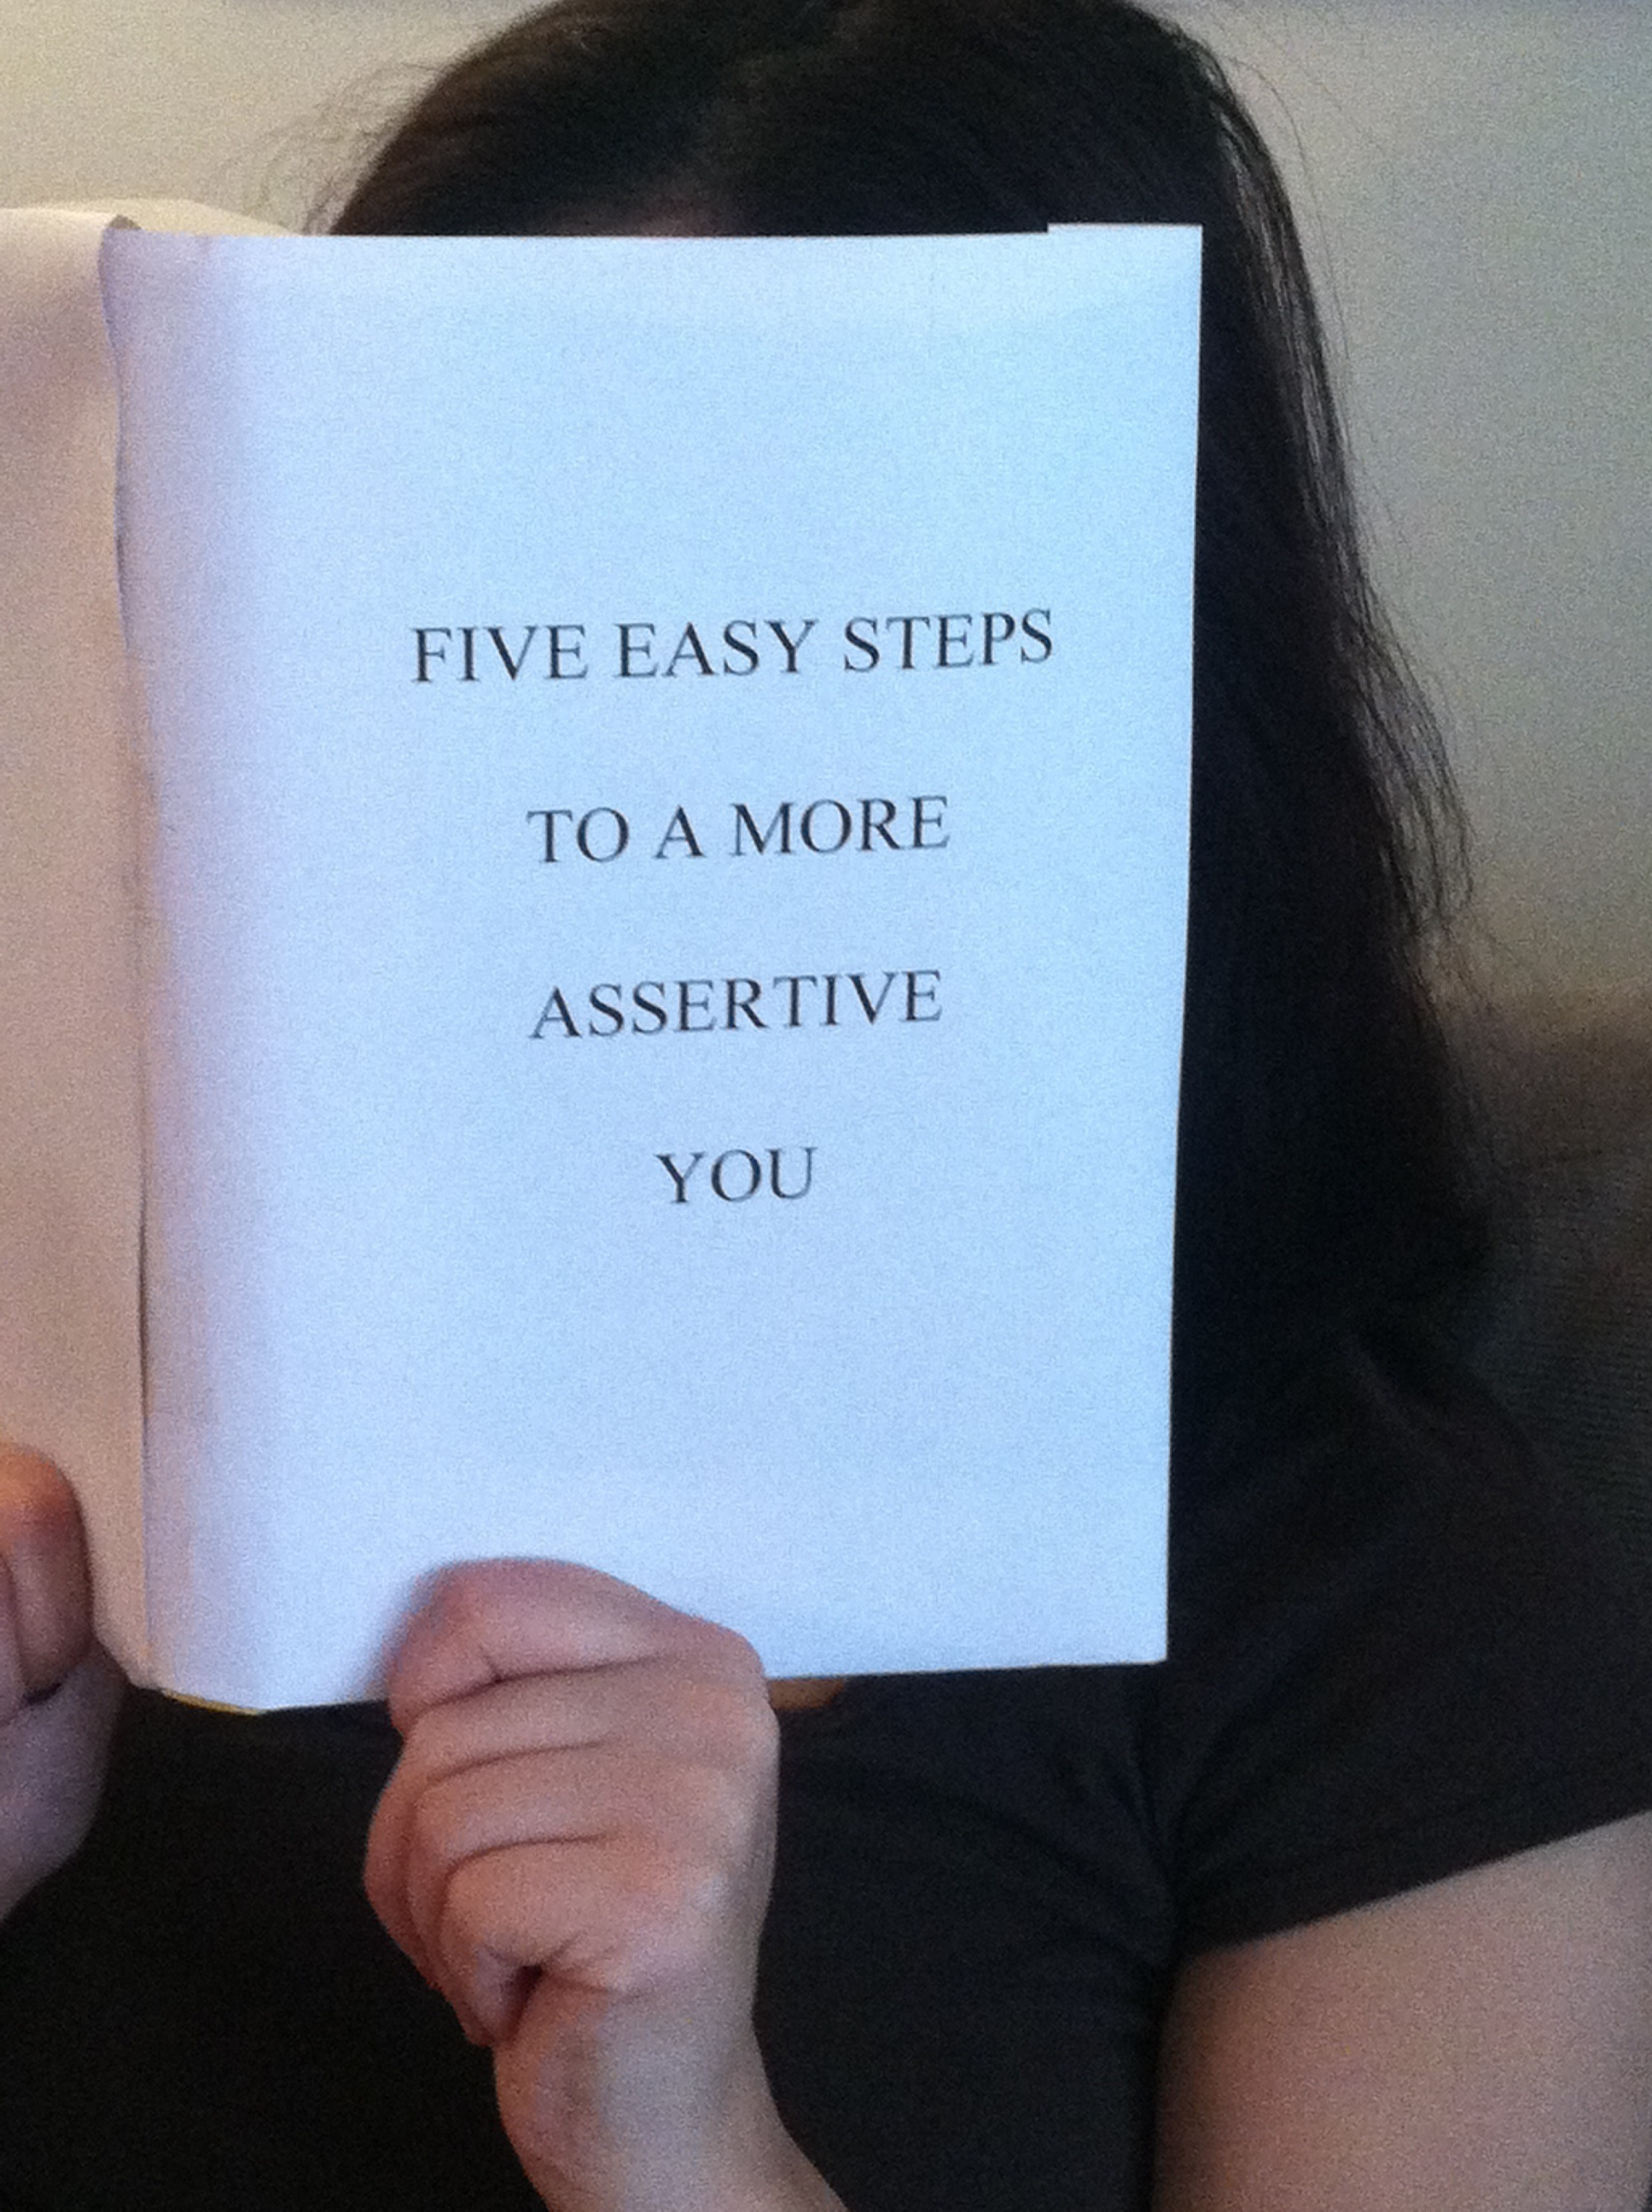 How Assertive Should You Be? The Answers Will Surprise You. | Psychology  Today